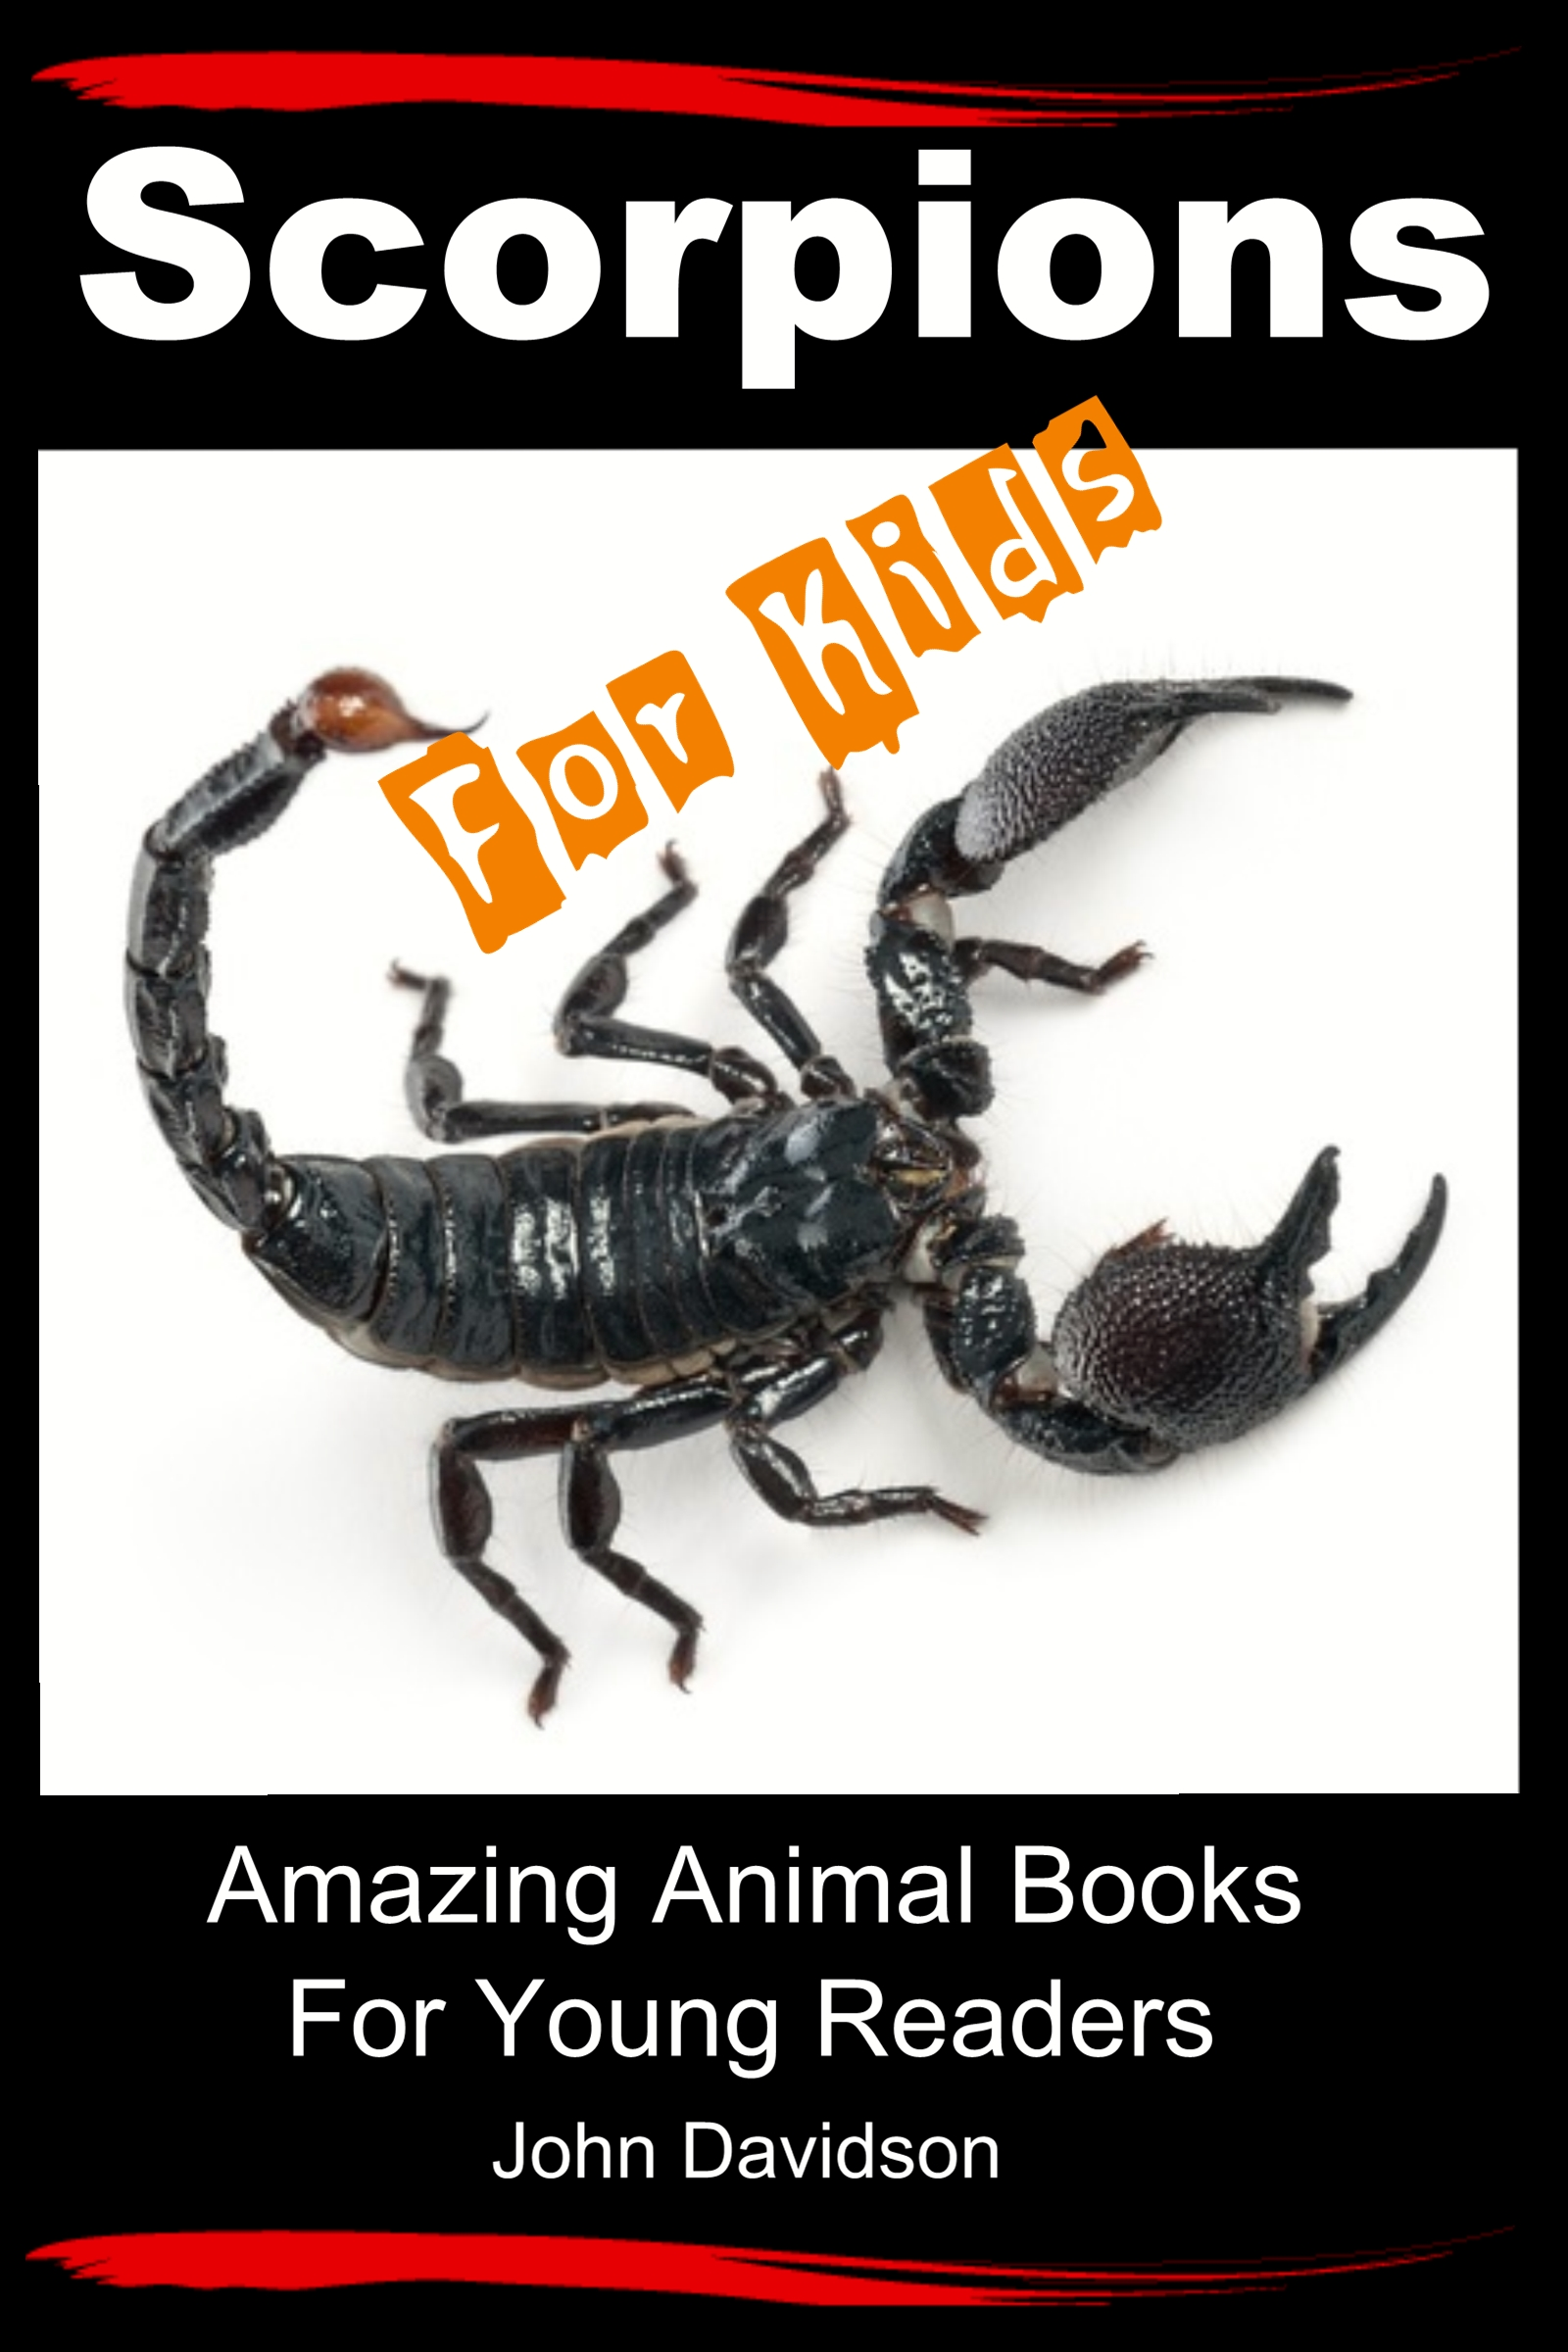 Scorpions For Kids – Amazing Animal Books For Young Readers  (sst-cdiv)